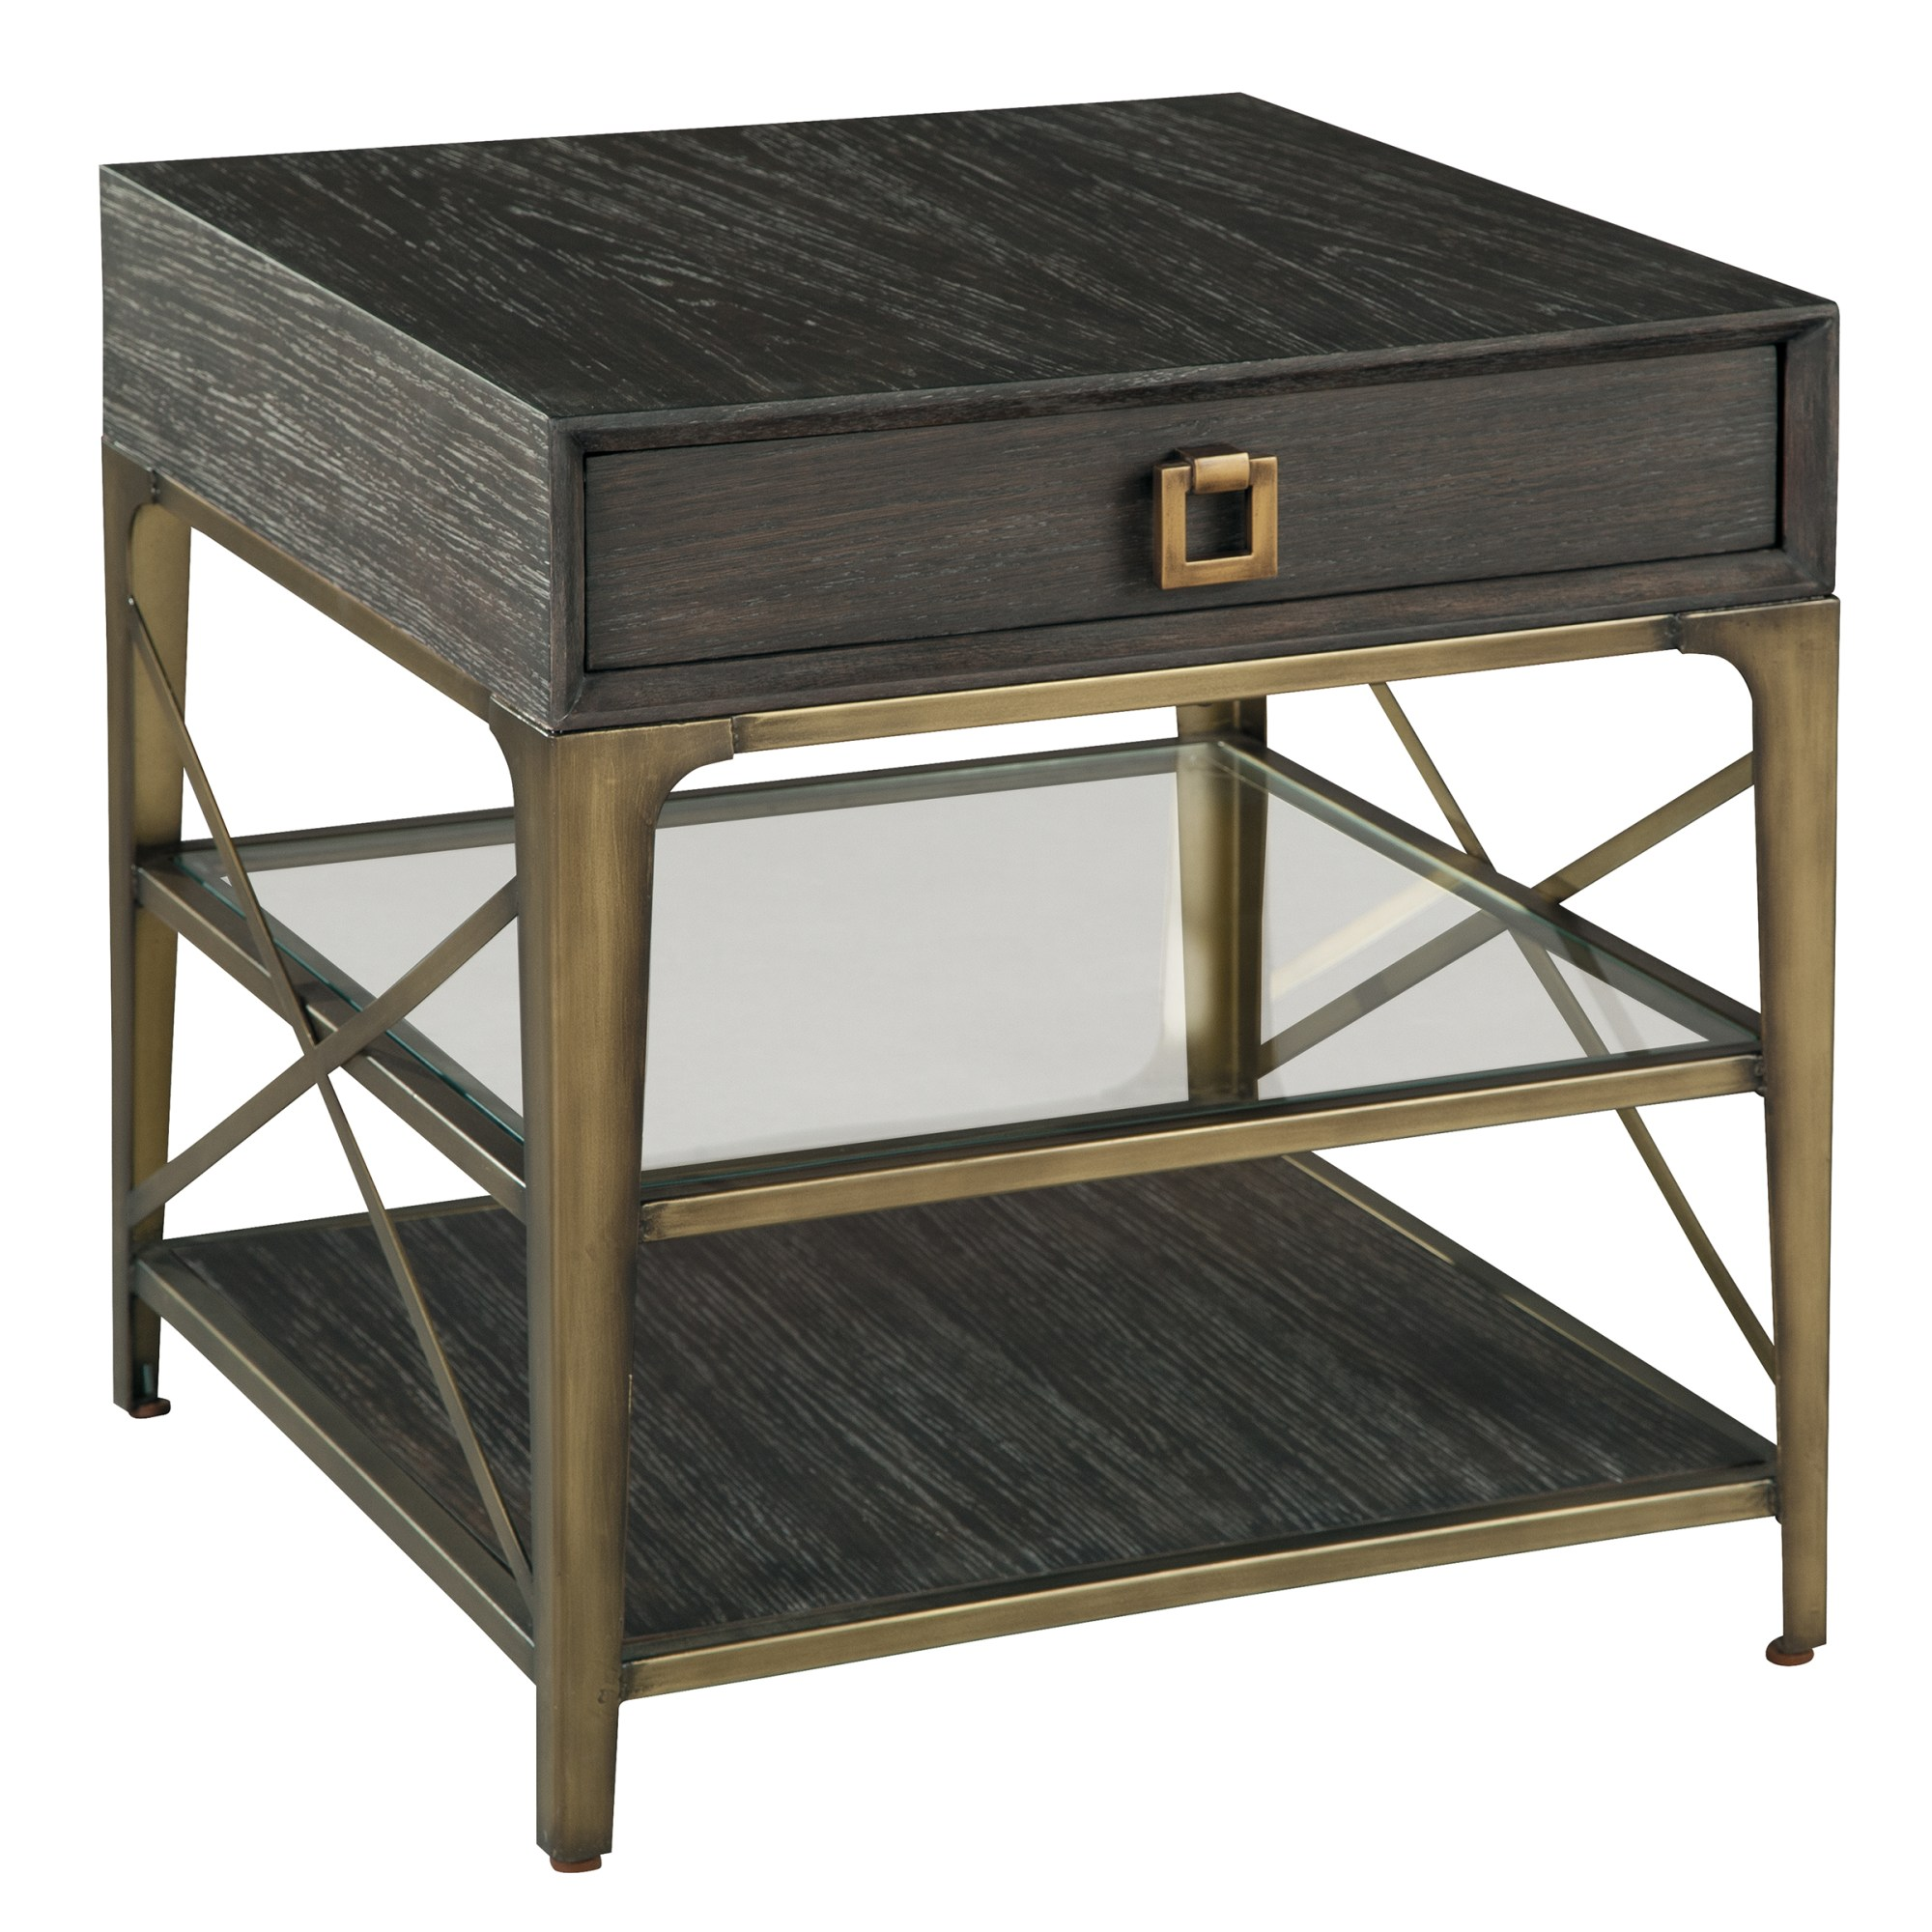 Image for 2-3803 Edgewater Lamp Table with Drawer from Hekman Official Website